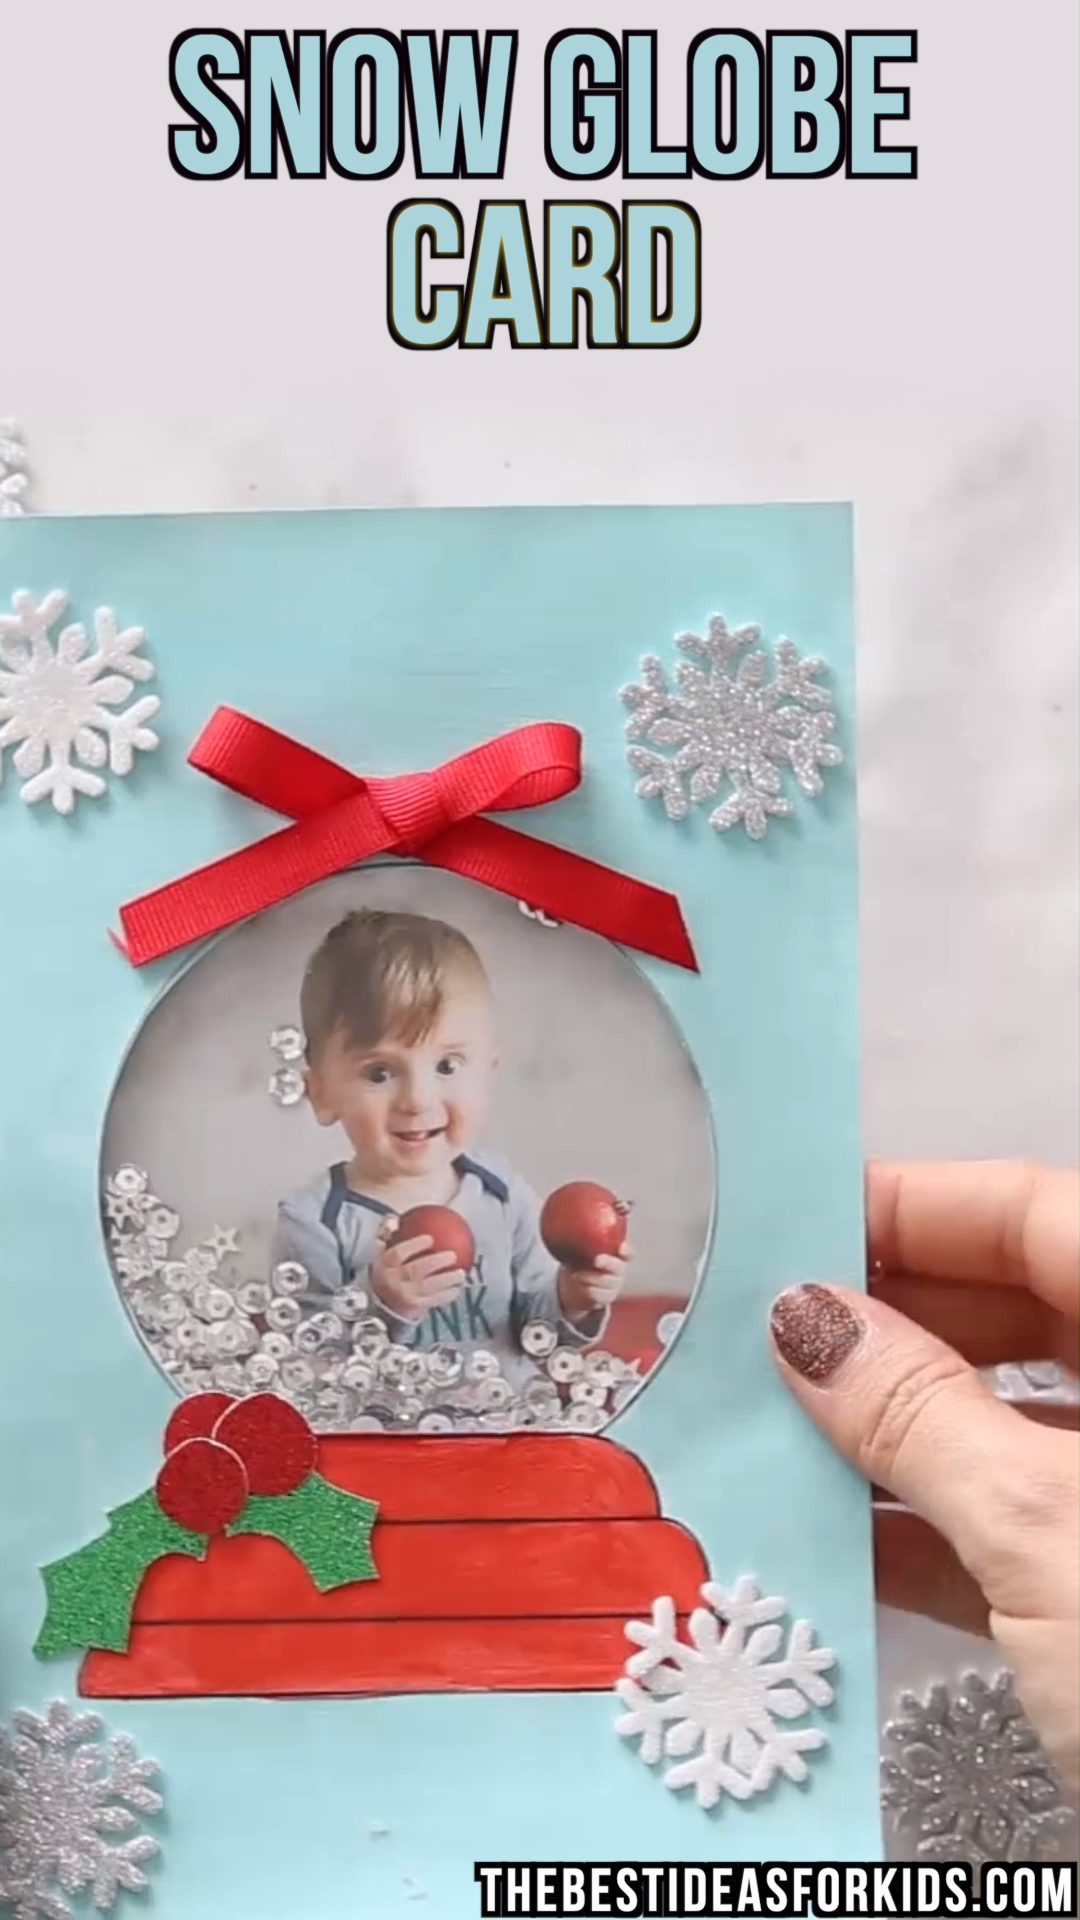 SNOW GLOBE CARD #parenting